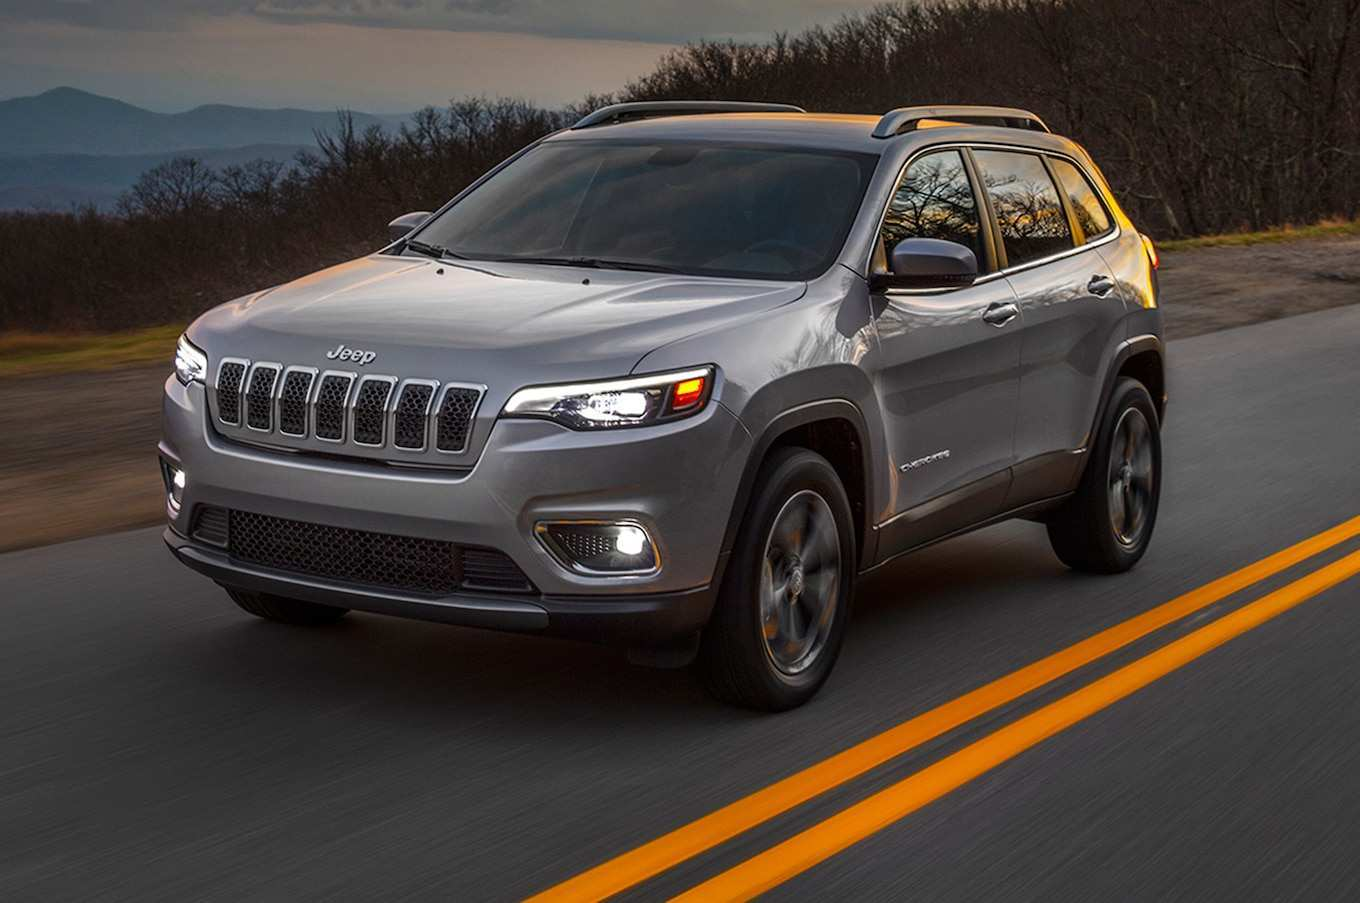 84 Best Review Jeep 2019 Overland Concept Overview by Jeep 2019 Overland Concept